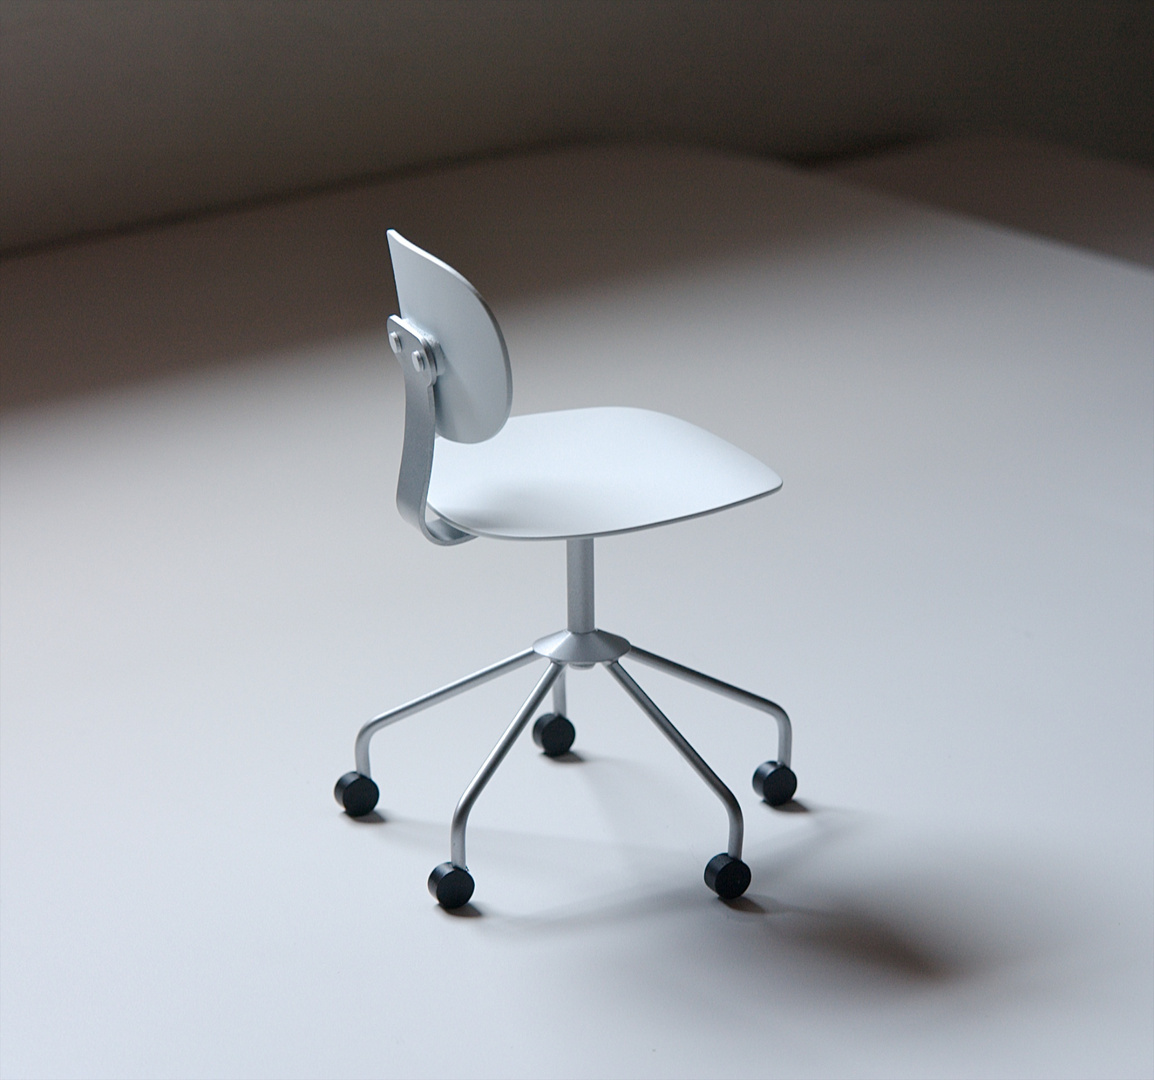 muji office chair. Muji Office. Office Chair